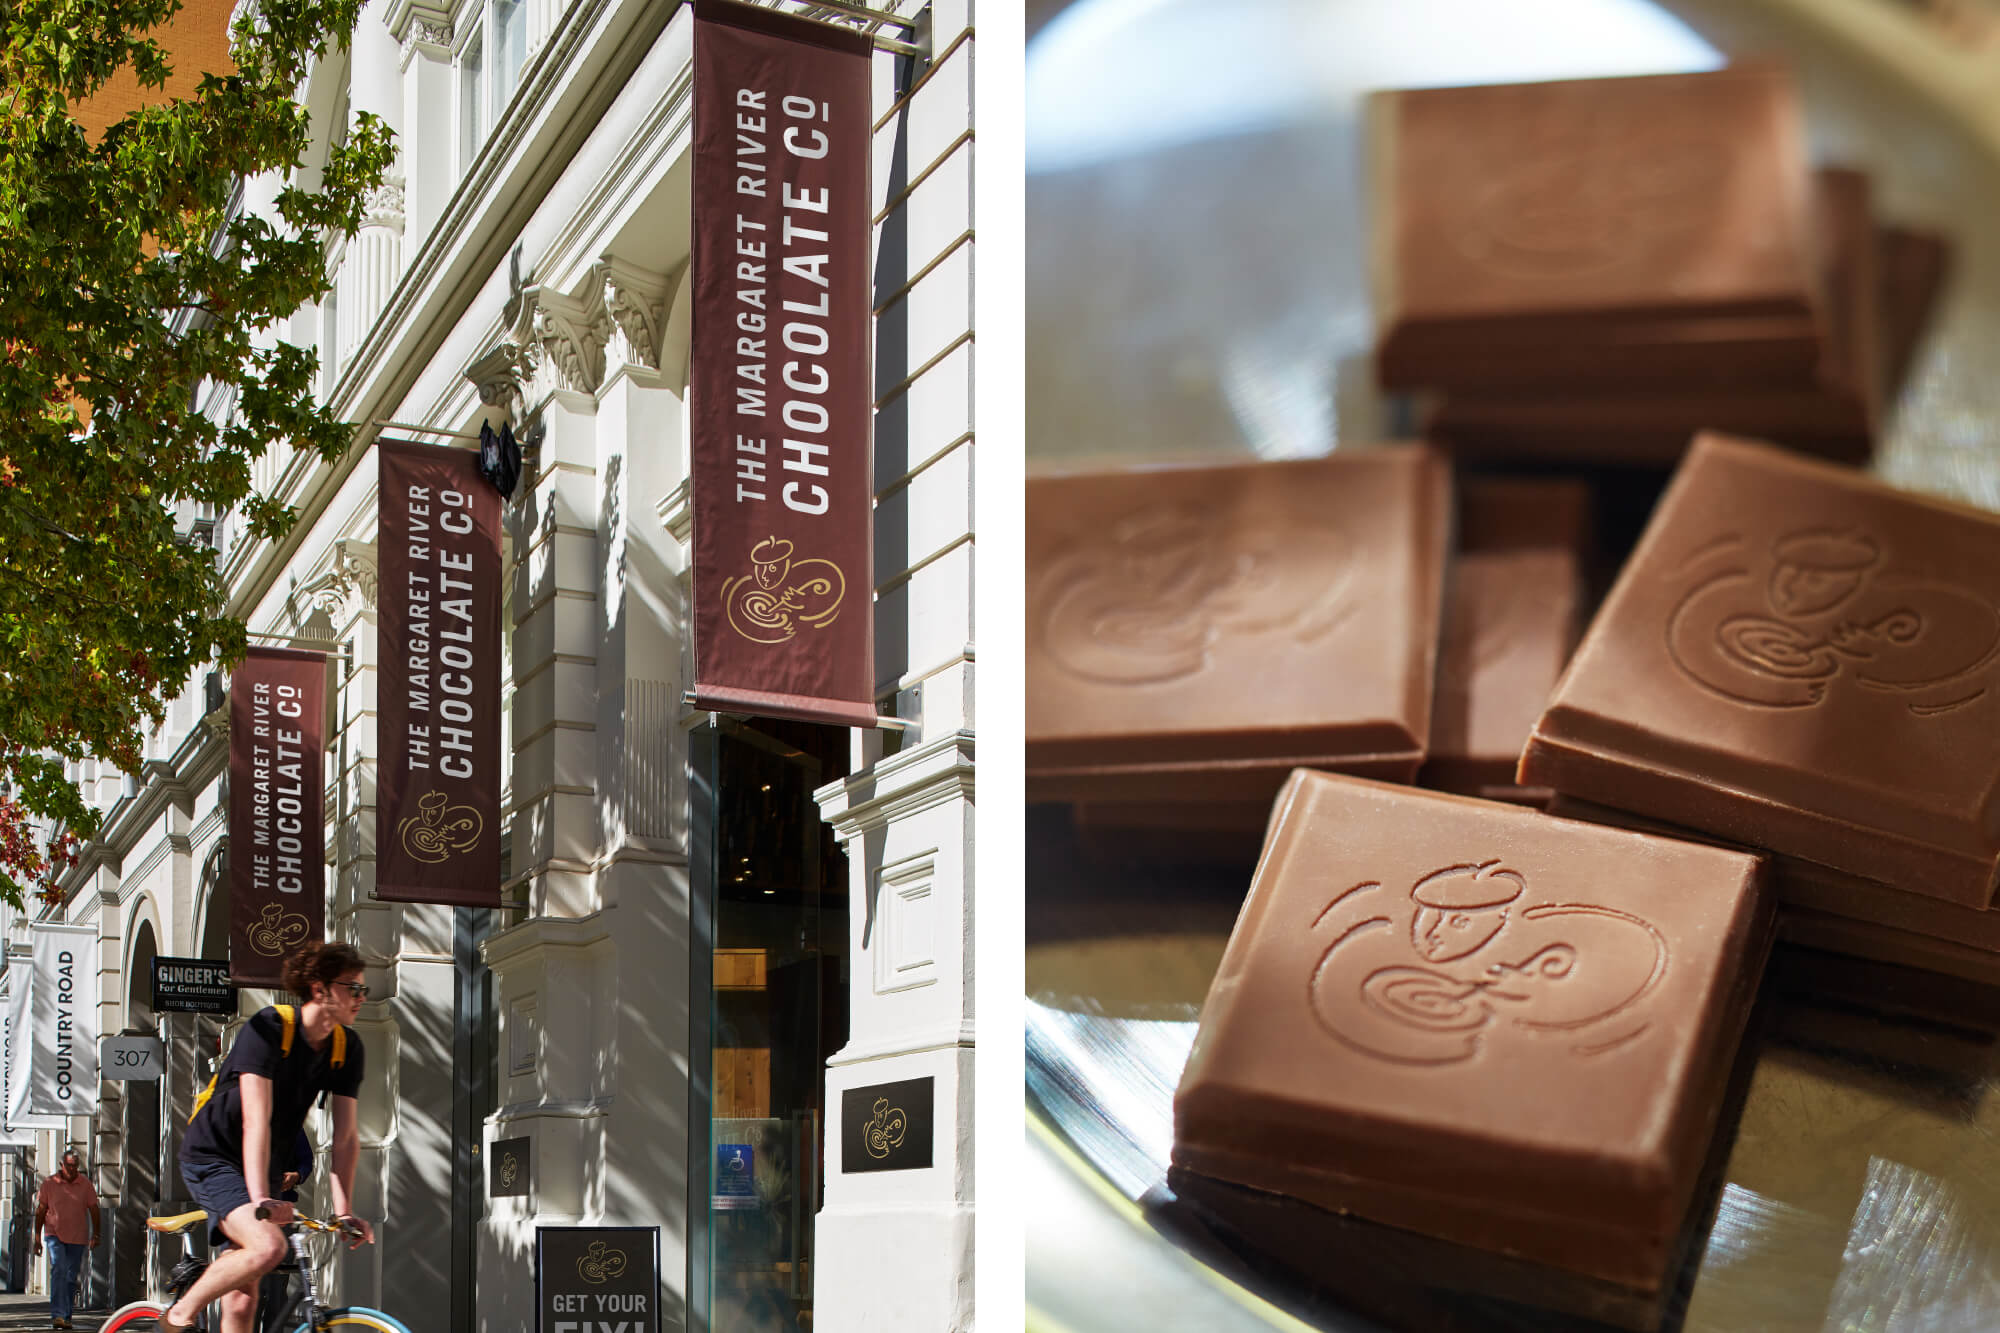 margaret_river_chocolate_company_shop_2